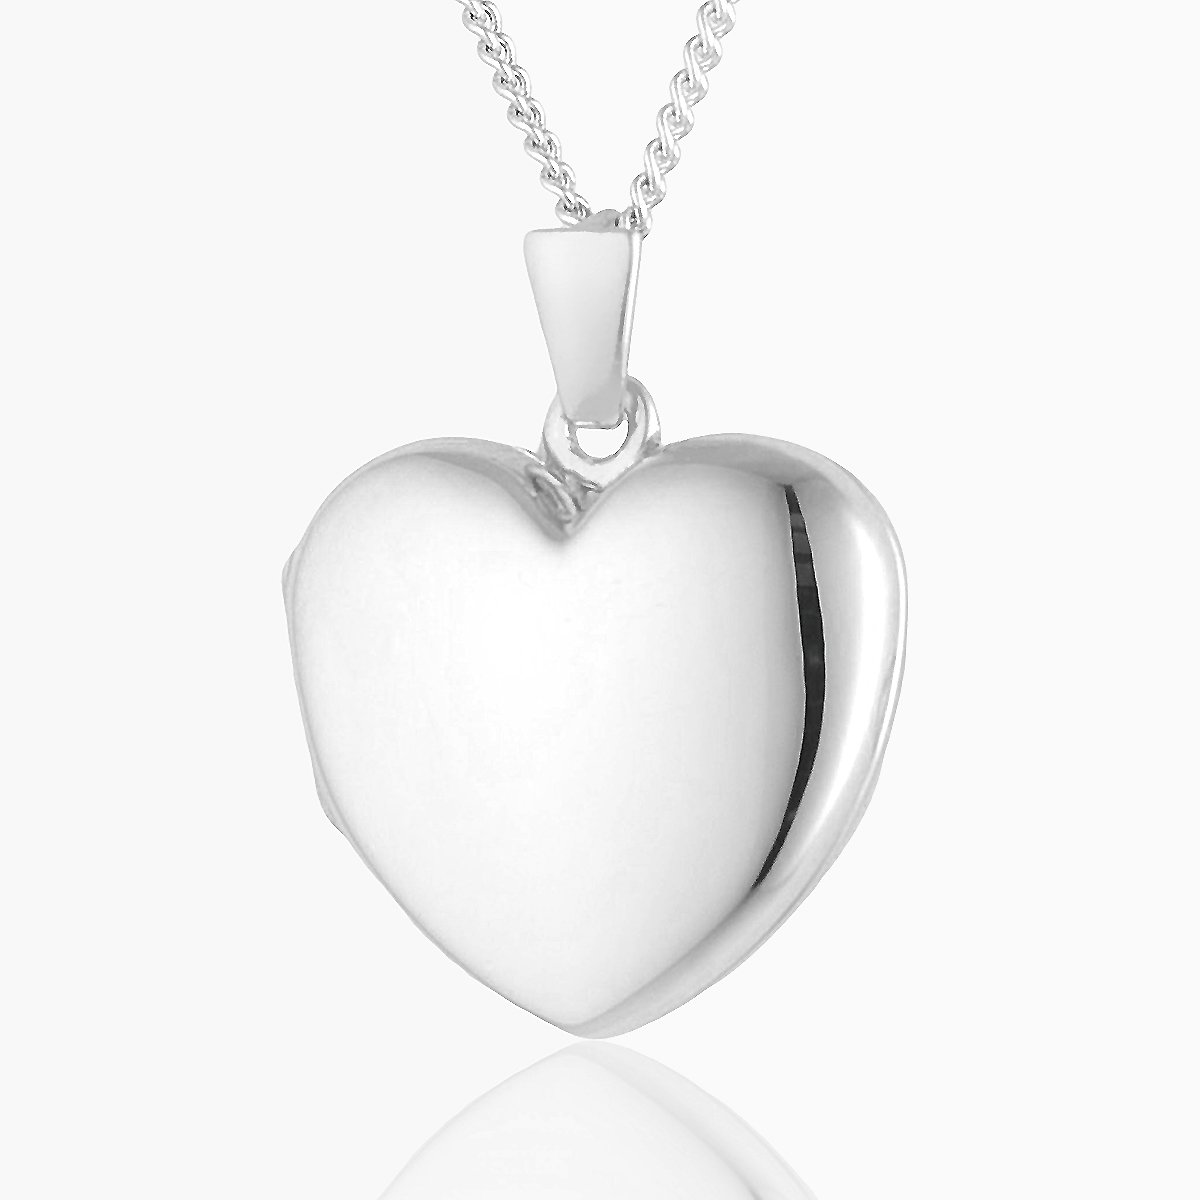 Product title: Premium Silver Heart Locket, product type: Locket